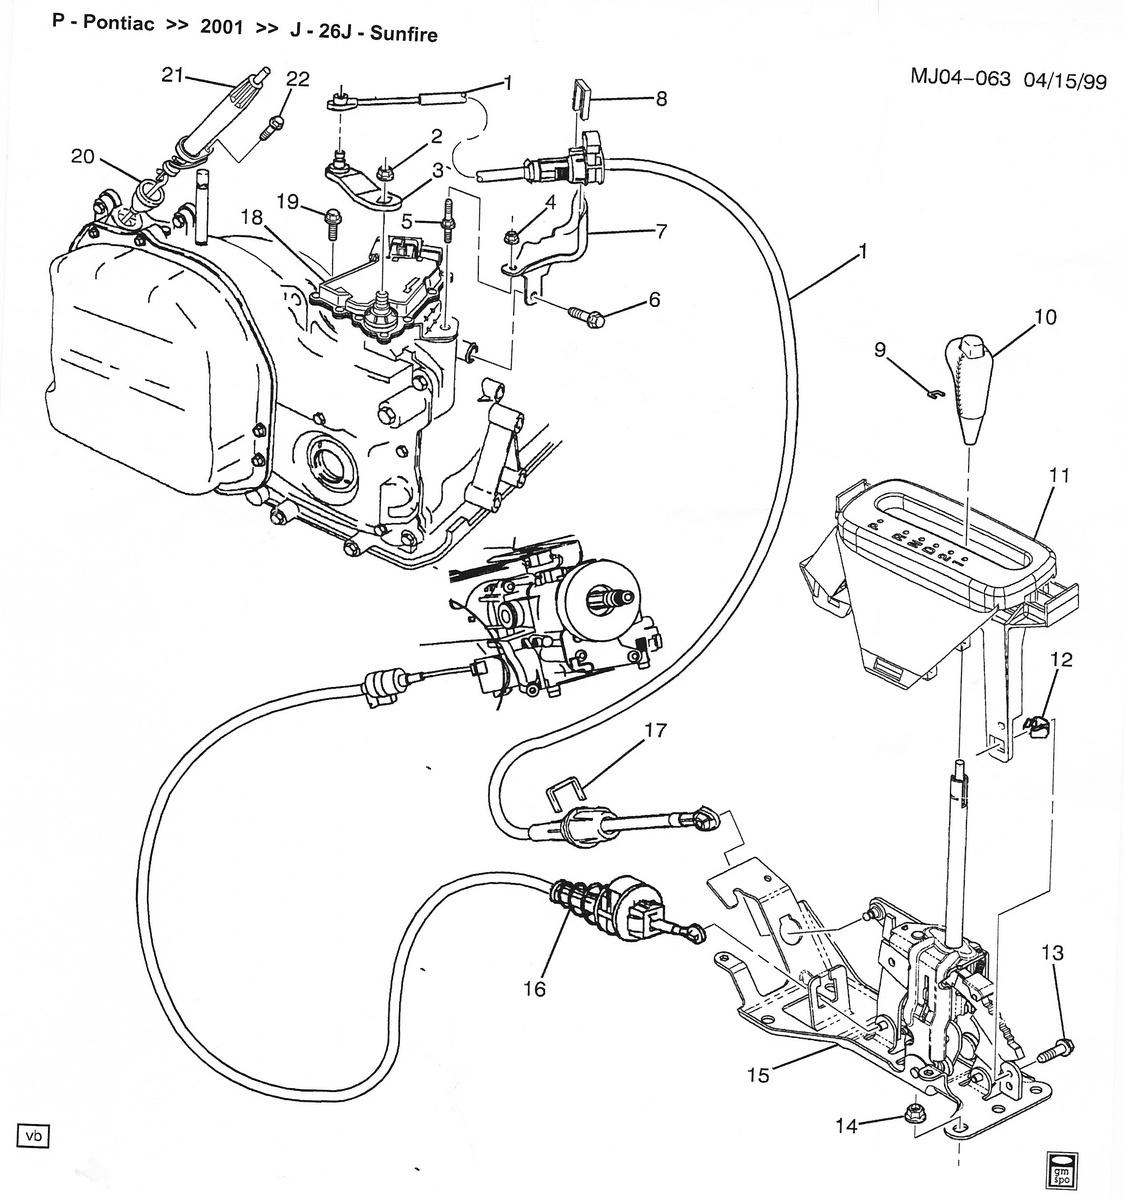 Discussion D608 ds527417 on 2001 nissan altima power steering pump location